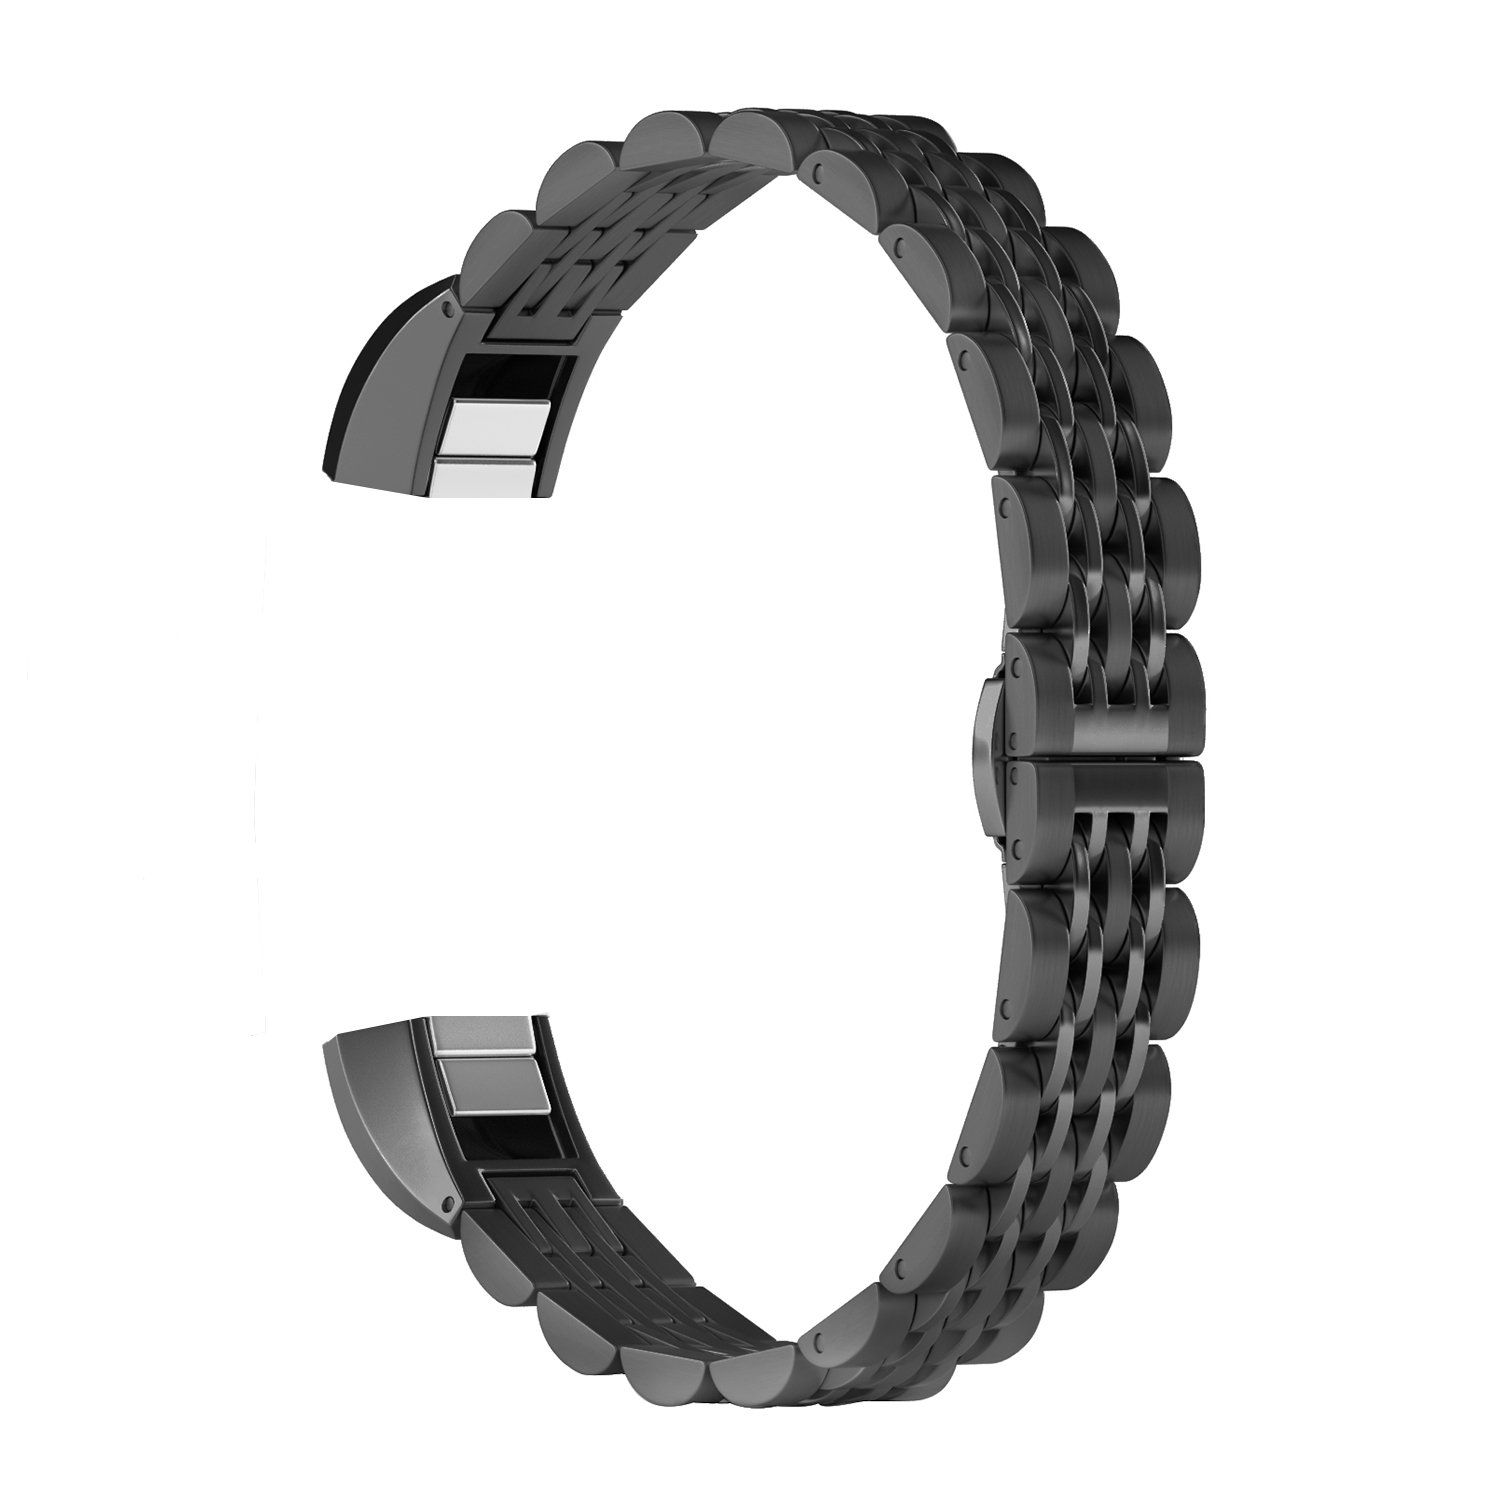 b155f273761 Amazon.com  ImmSss Band Compatible for Fitbit Alta HR and Fitbit ...